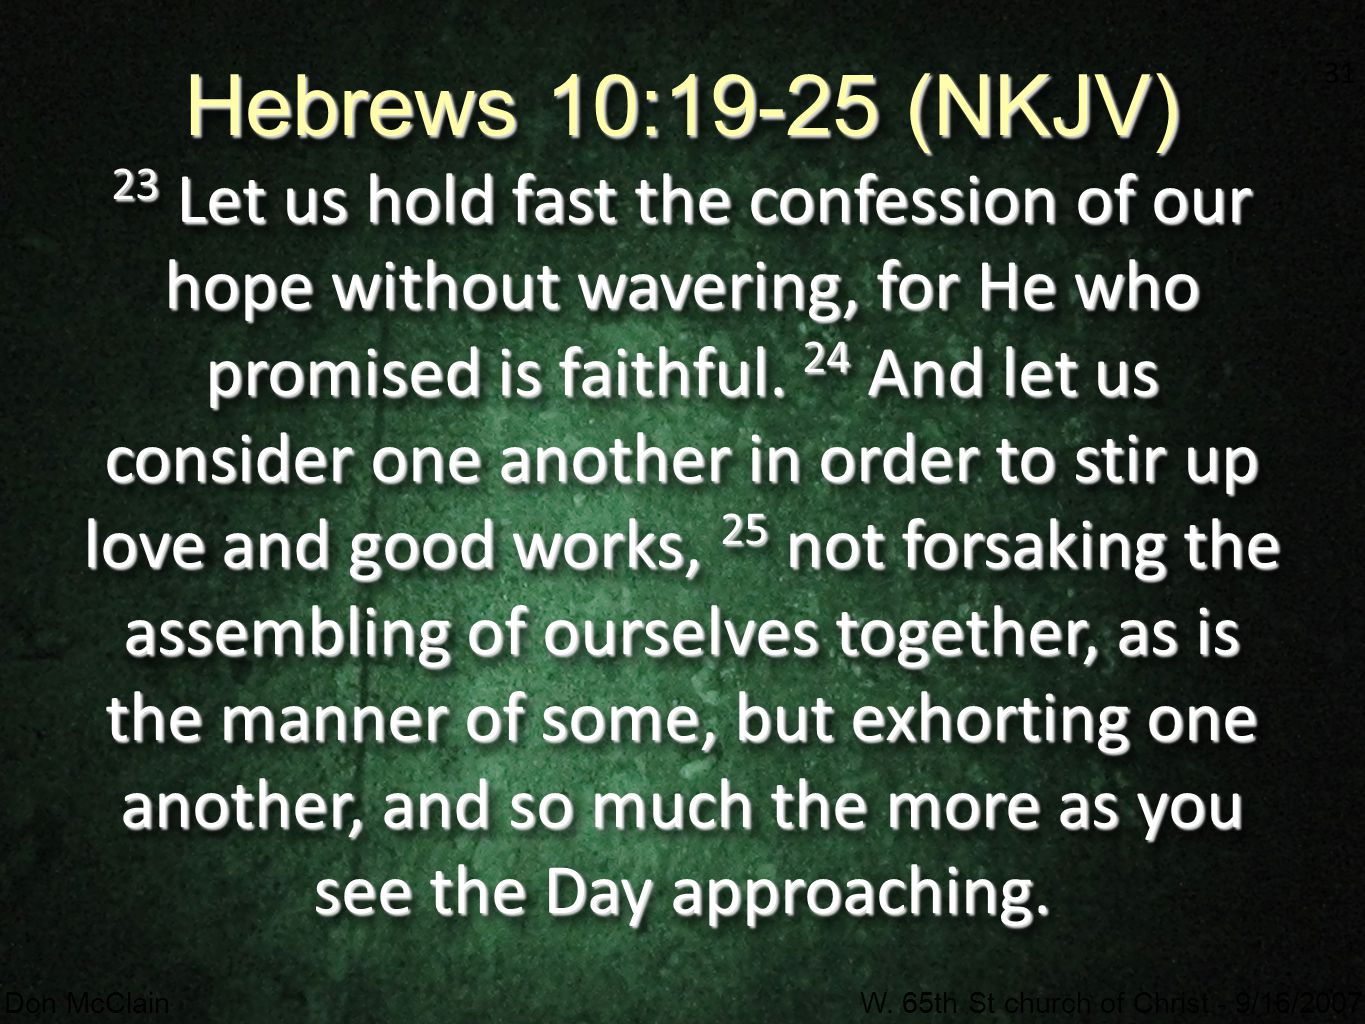 31 Don McClainW. 65th St church of Christ - 9/16/2007 31 Hebrews 10:19-25 (NKJV) 23 Let us hold fast the confession of our hope without wavering, for